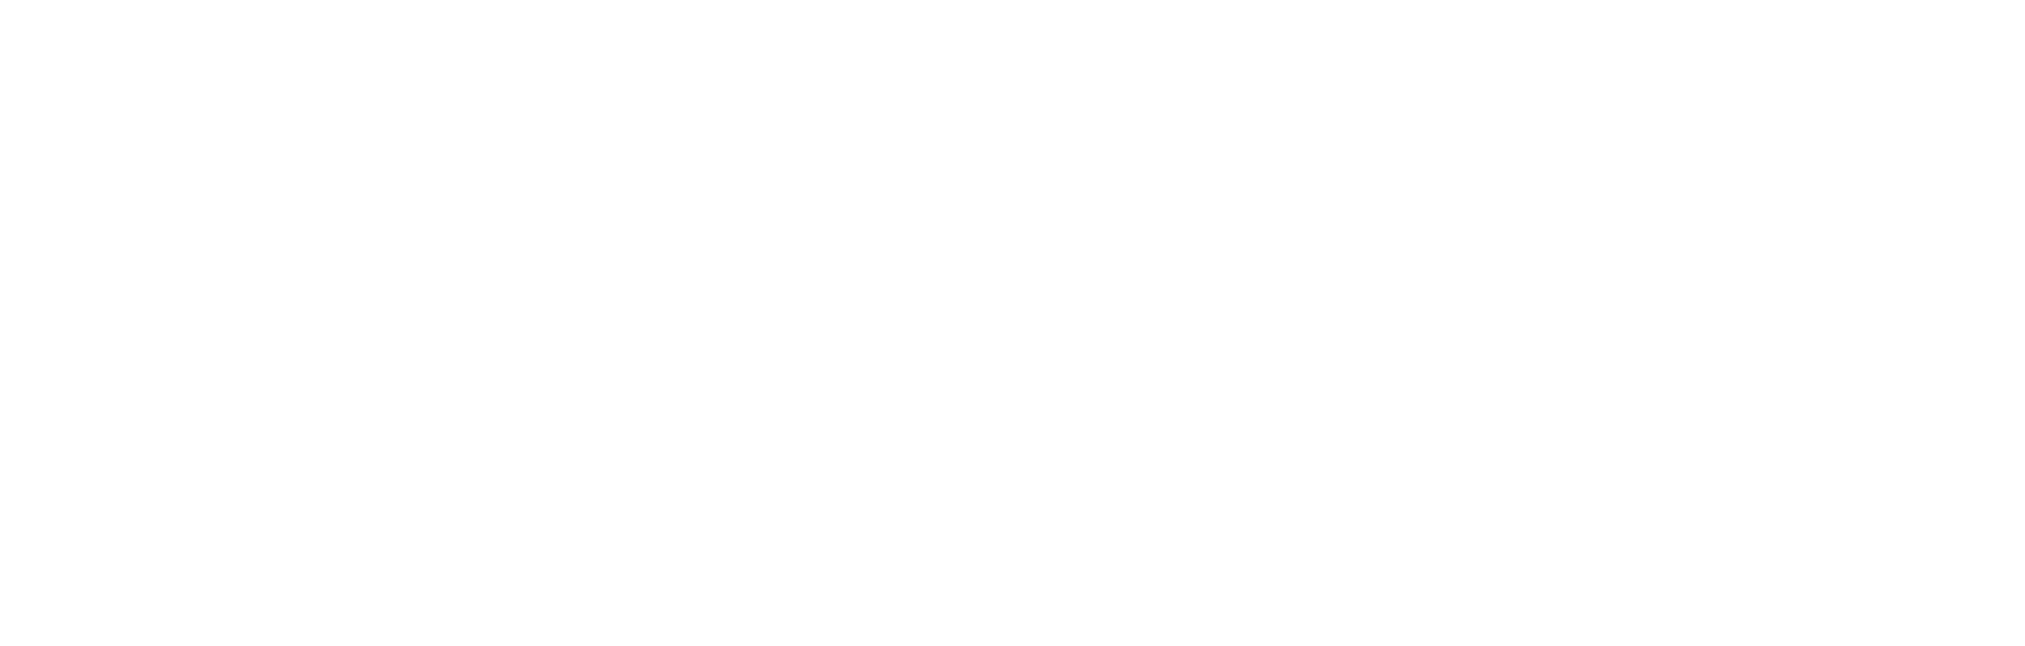 LawPay Home